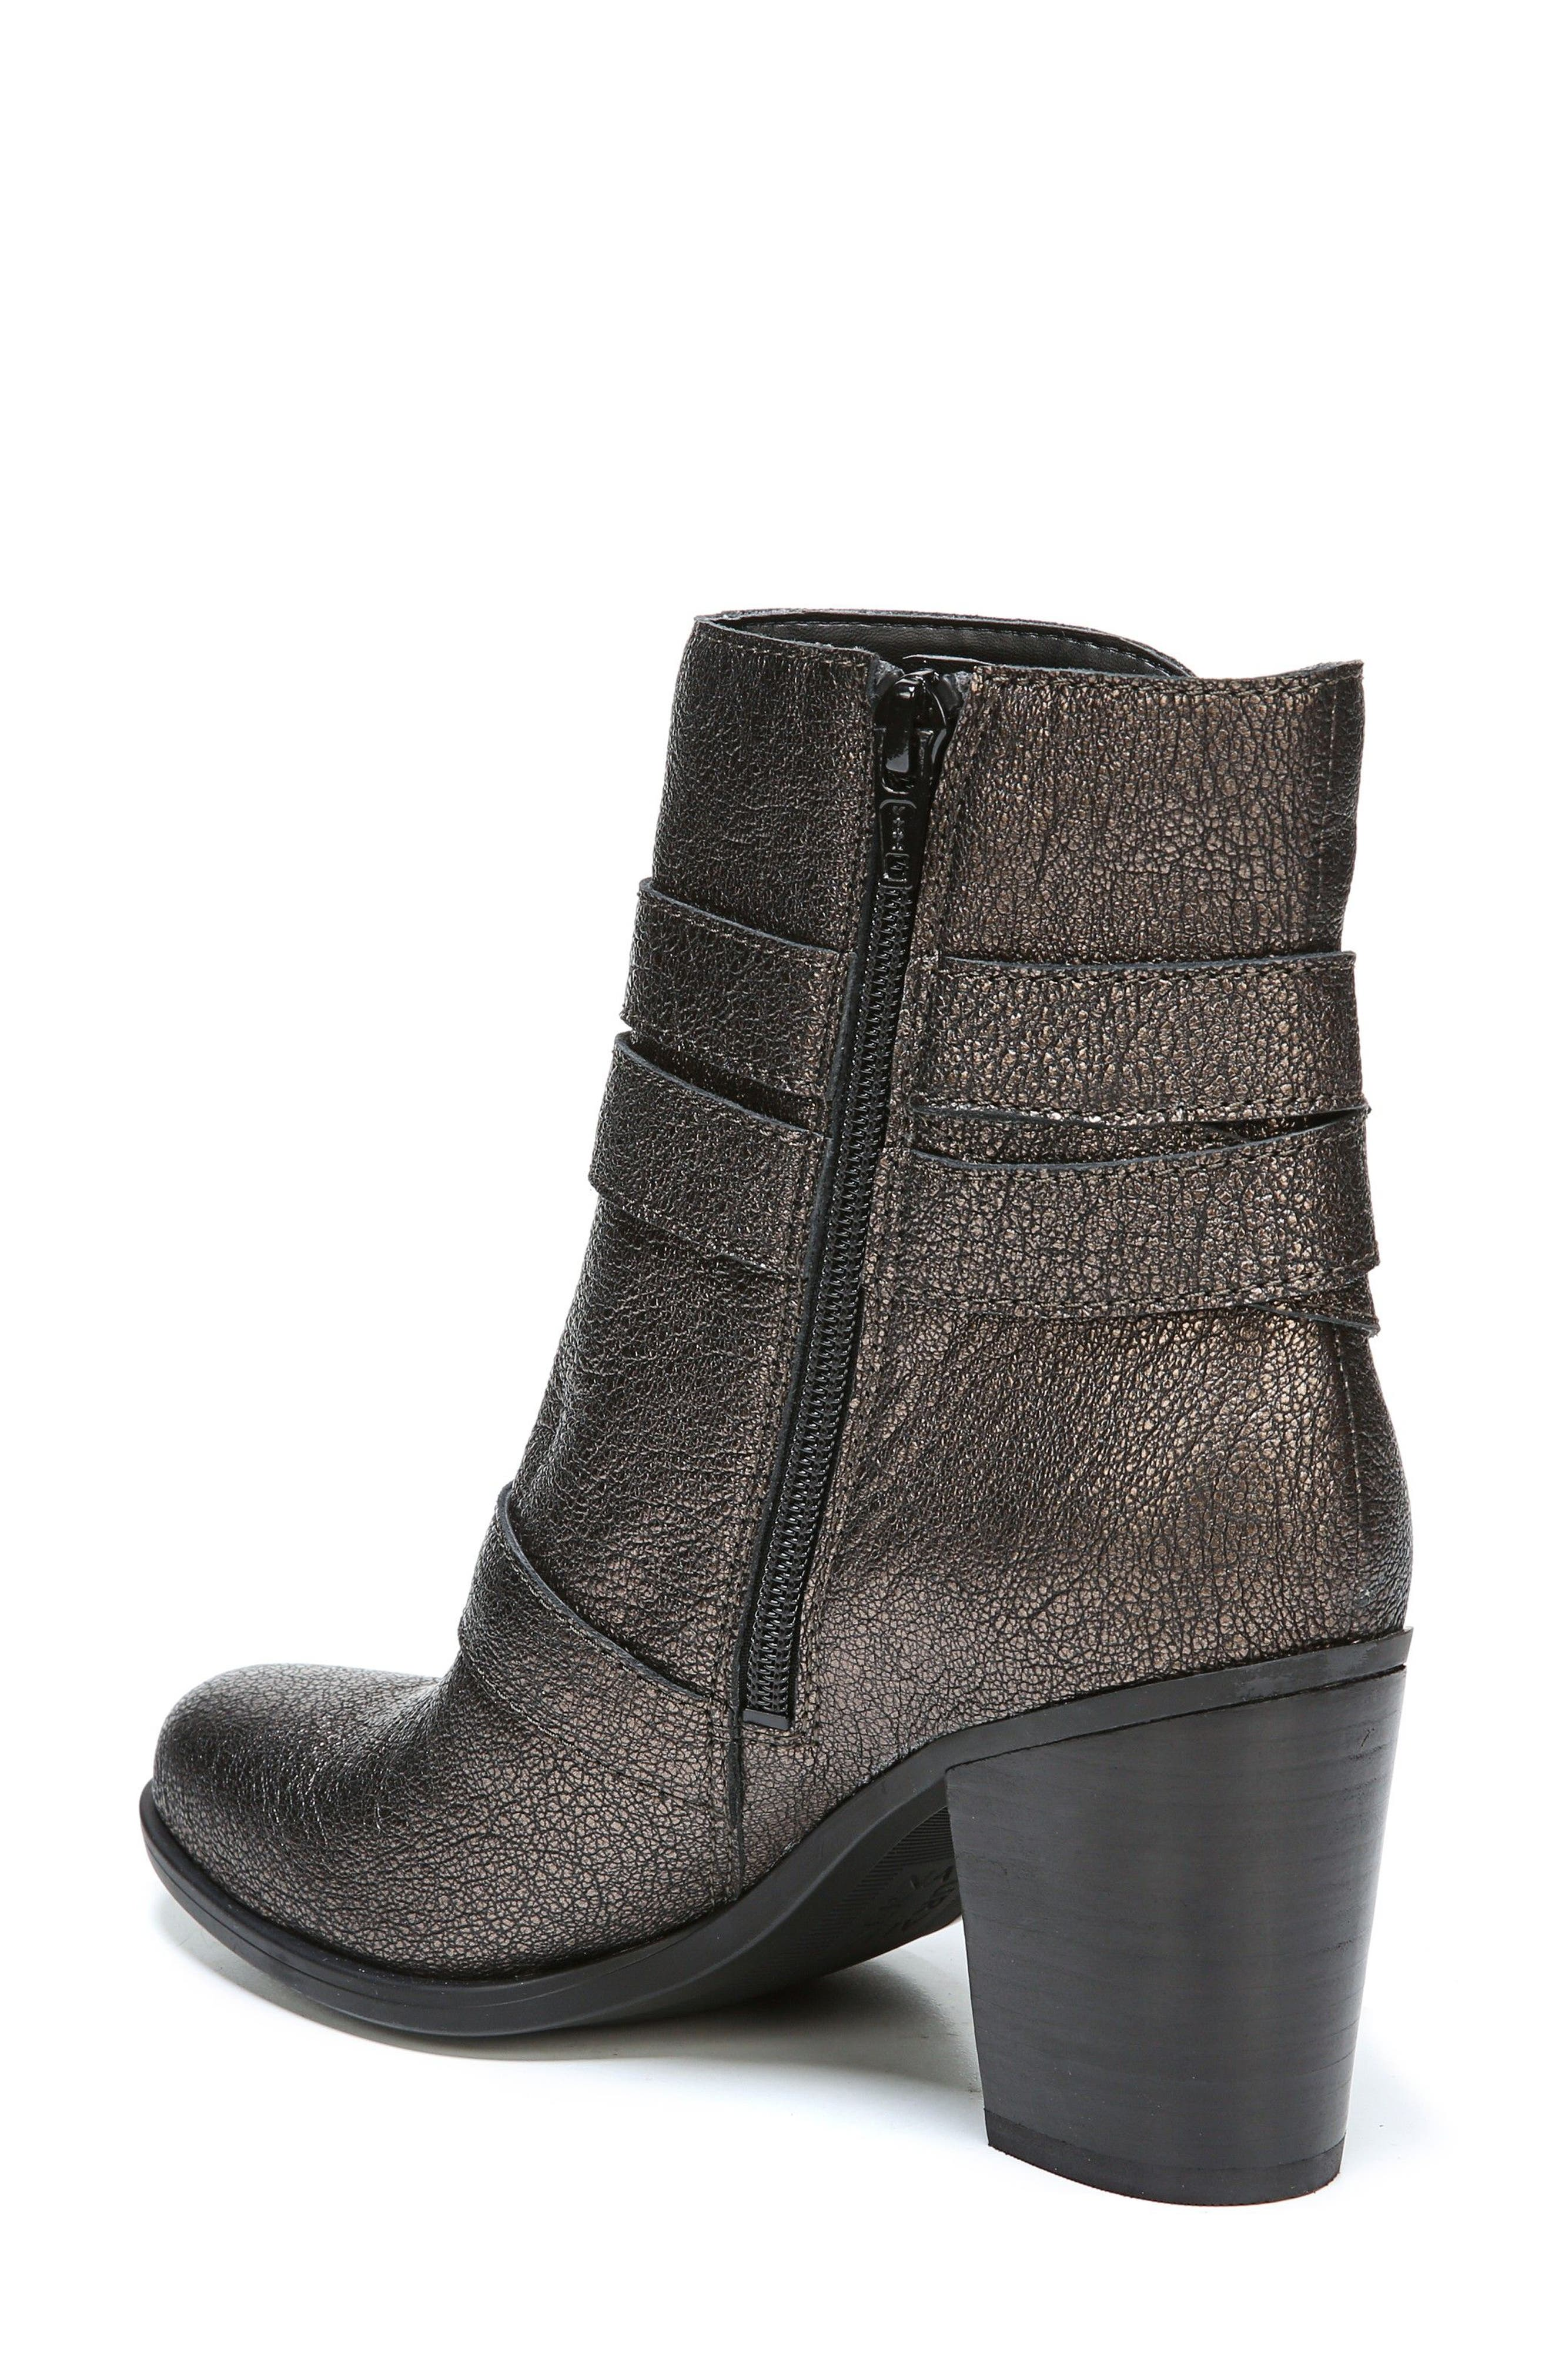 Karlie Buckle Bootie,                             Alternate thumbnail 2, color,                             Bronze Leather